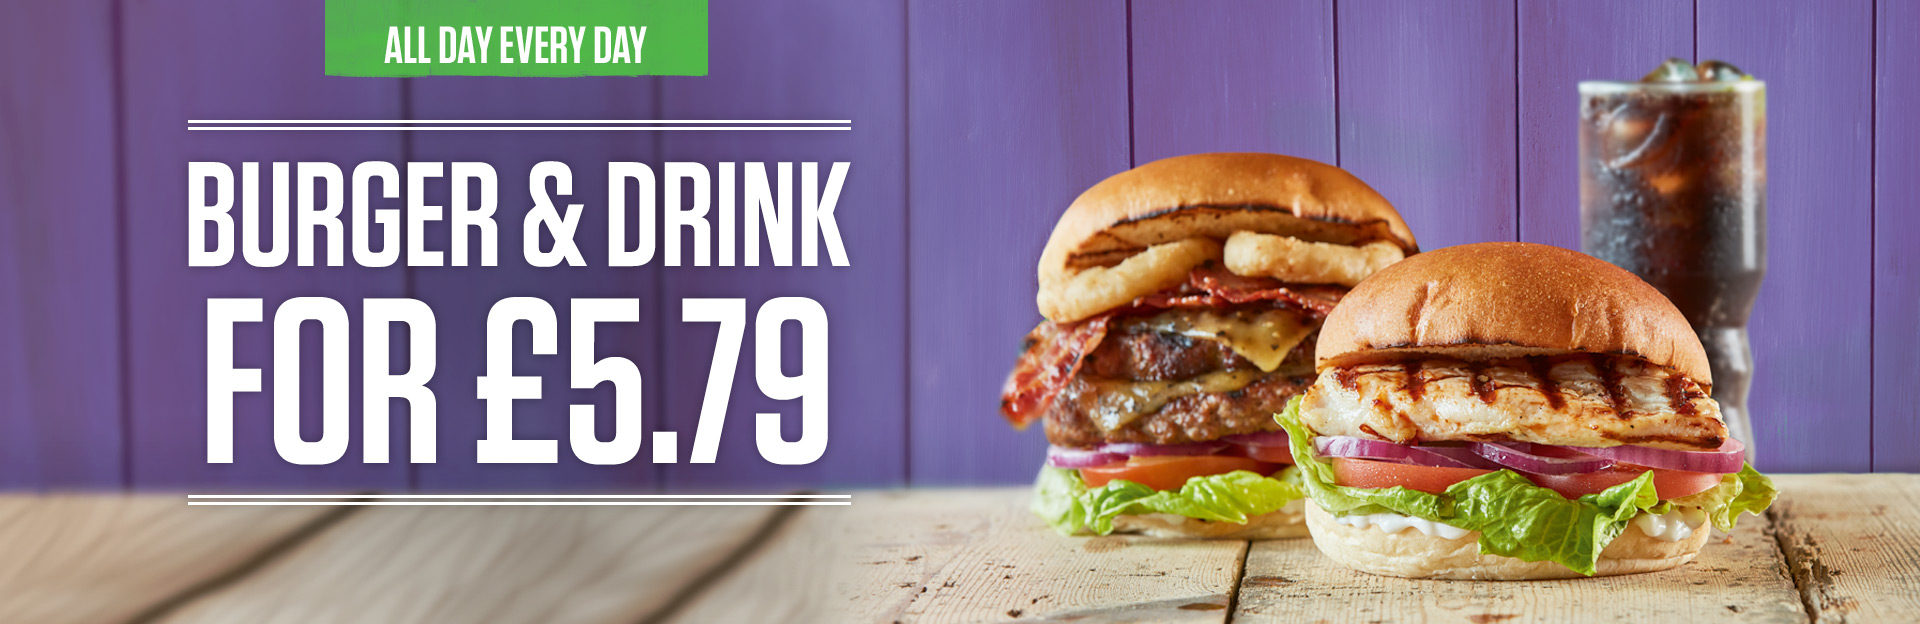 Burger and Drink Deal at The Stag and Three Horseshoes